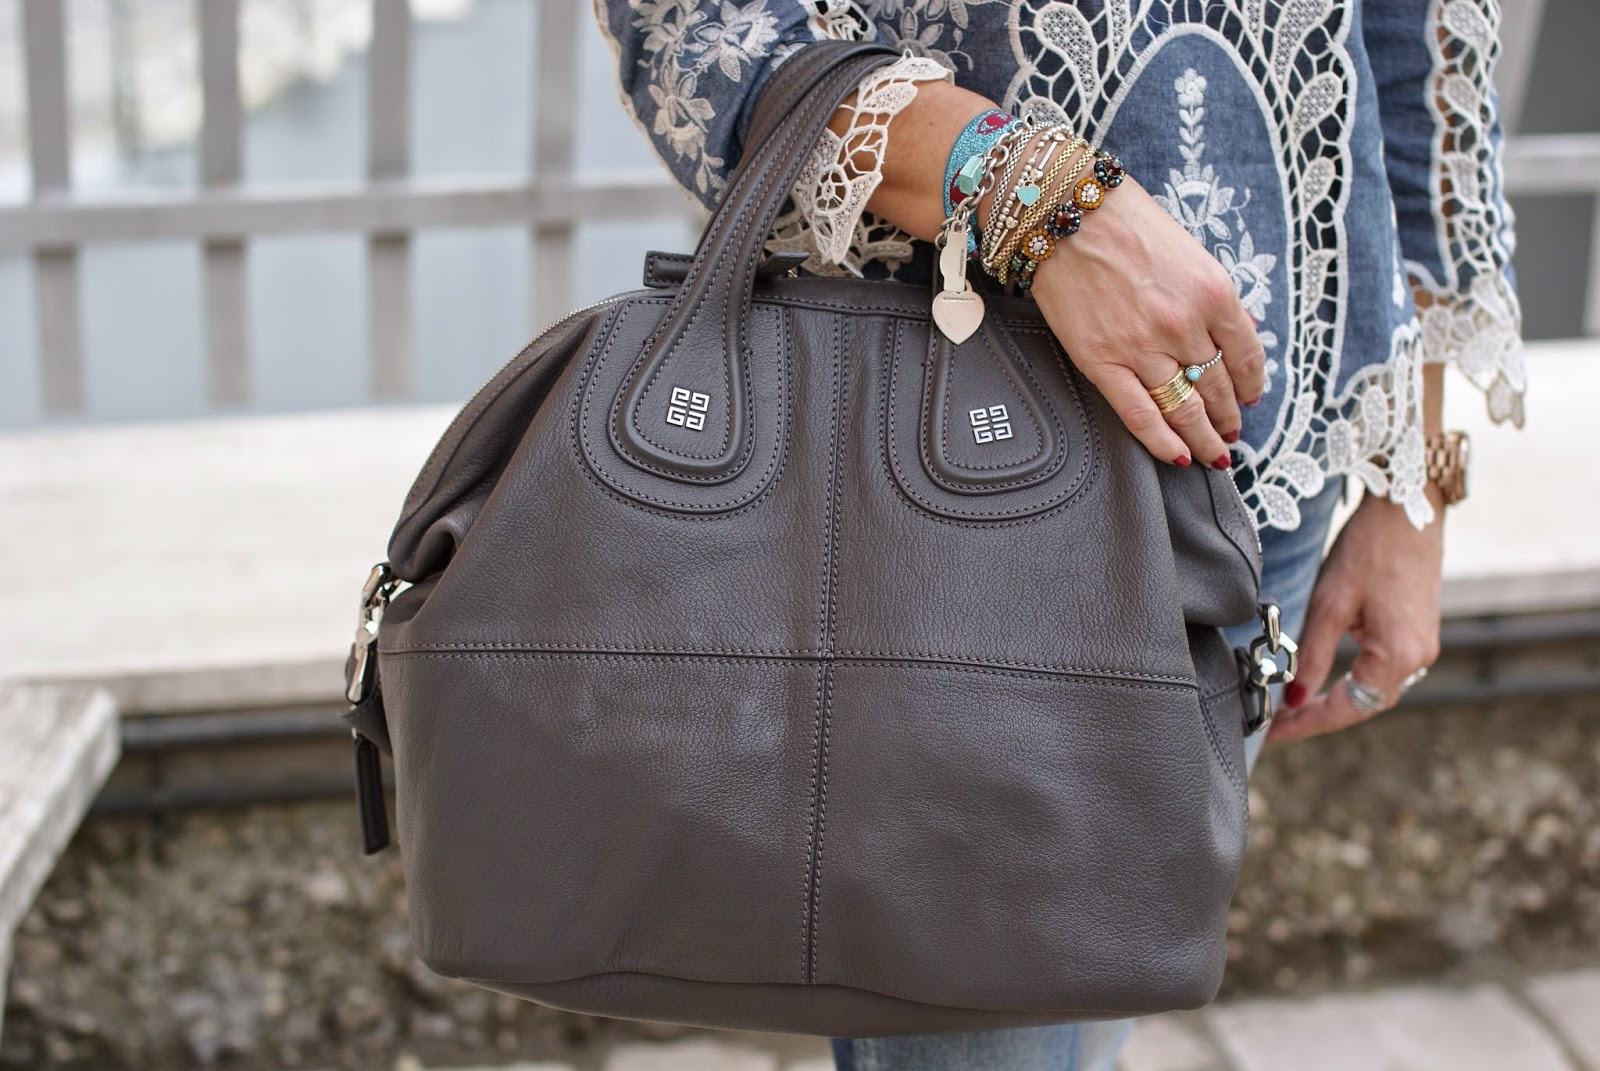 Givenchy Nightingale medium bag in grey, Sodini bracelet, Fashion and Cookies, fashion blogger